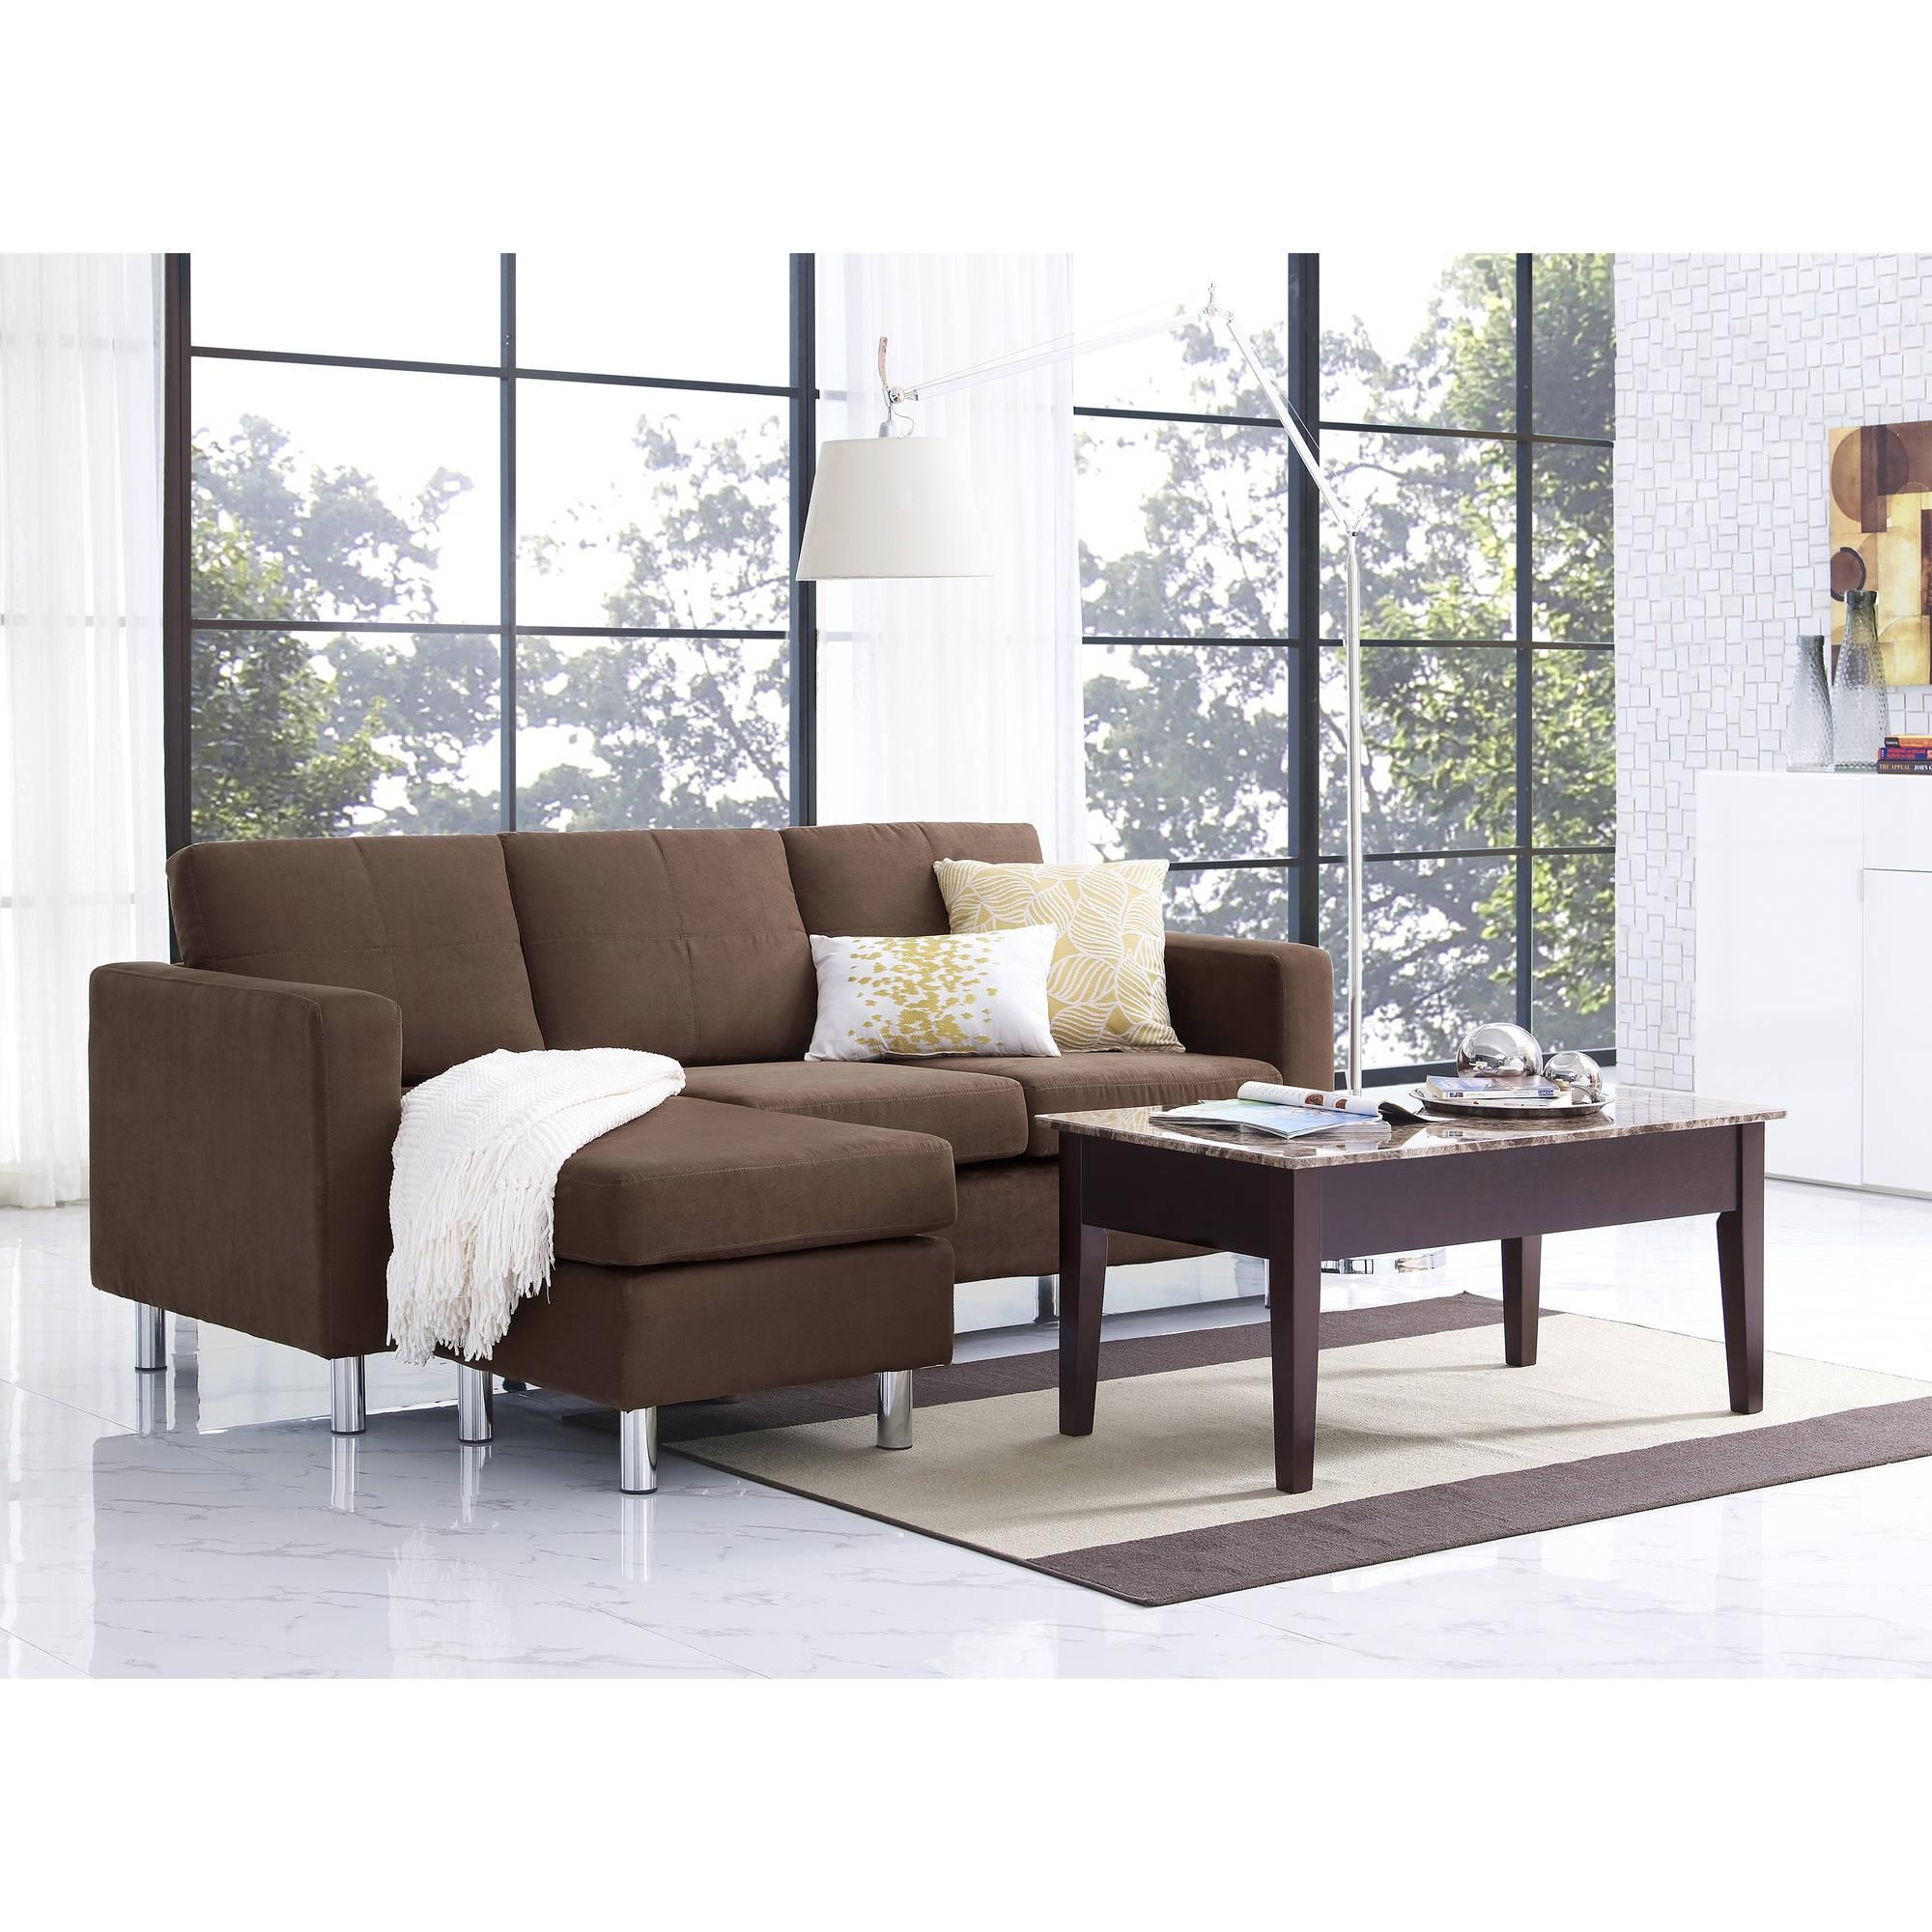 Dorel Living Small Spaces Configurable Sectional Sofa, Multiple Within Sectional Small Spaces (View 5 of 20)